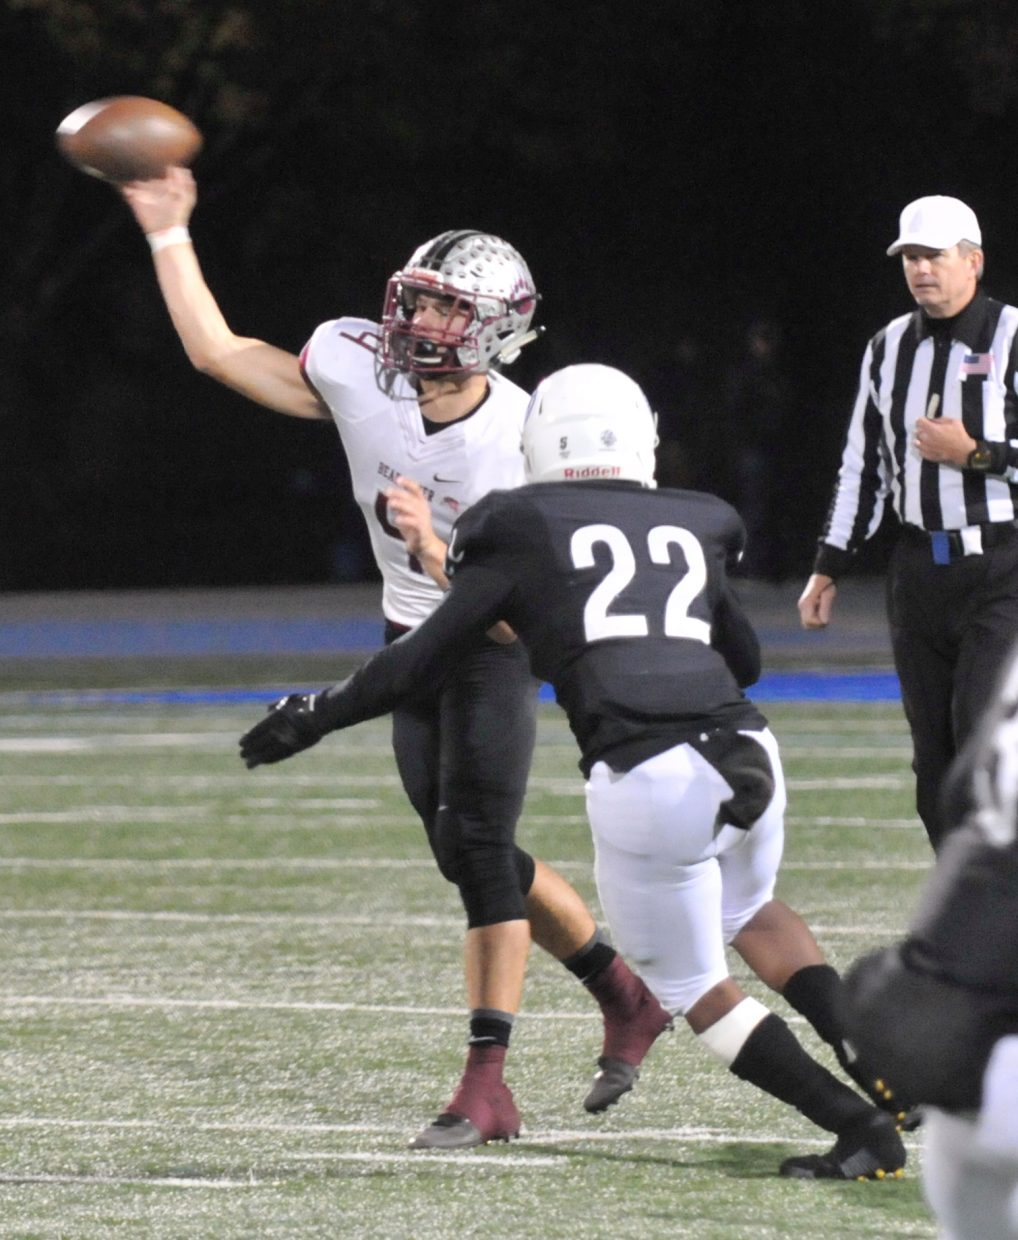 Bear River quarterback Luke Bagget (4) fires off a pass before getting tackled by the Capital Christian defense.